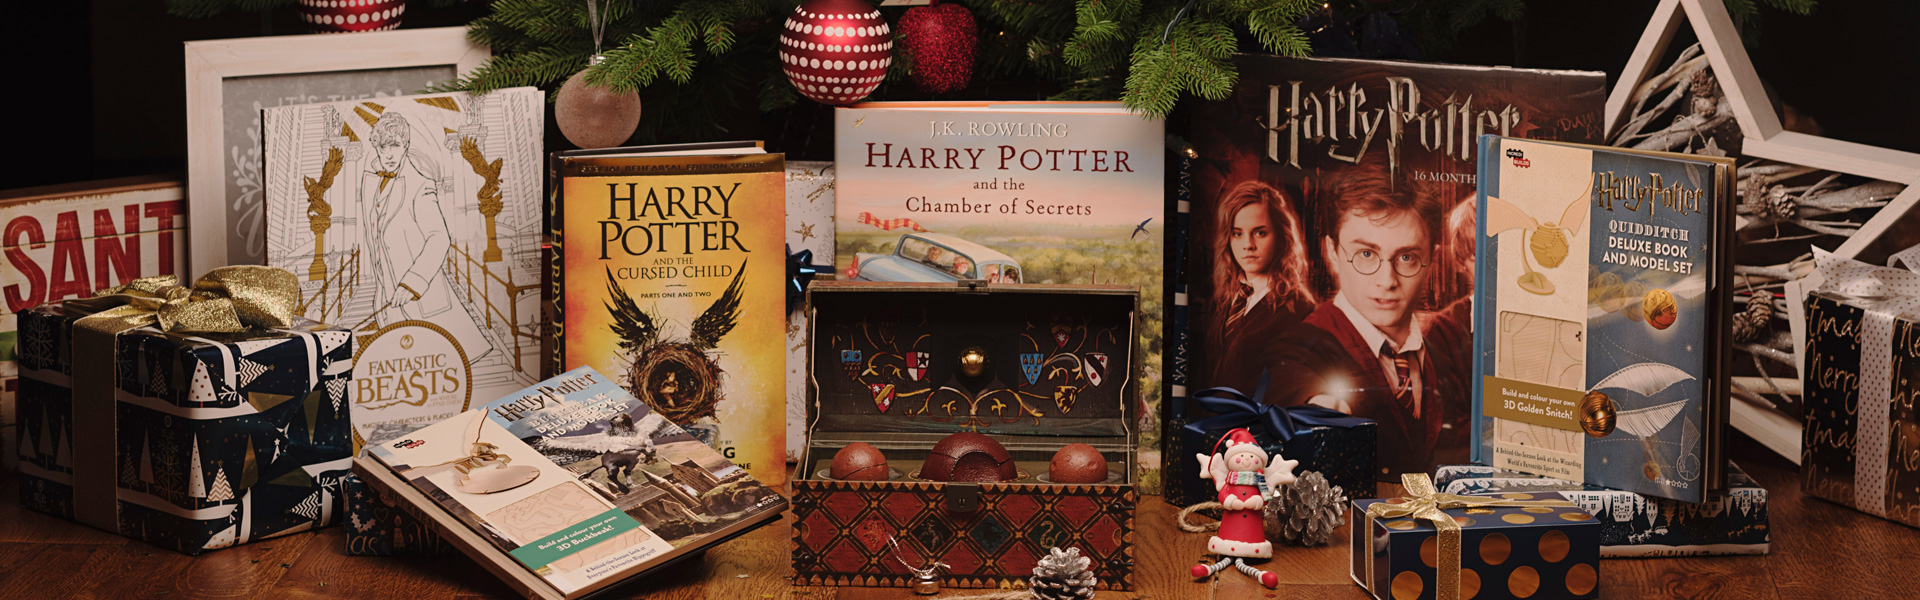 Magical Gifts for Harry Potter Fans